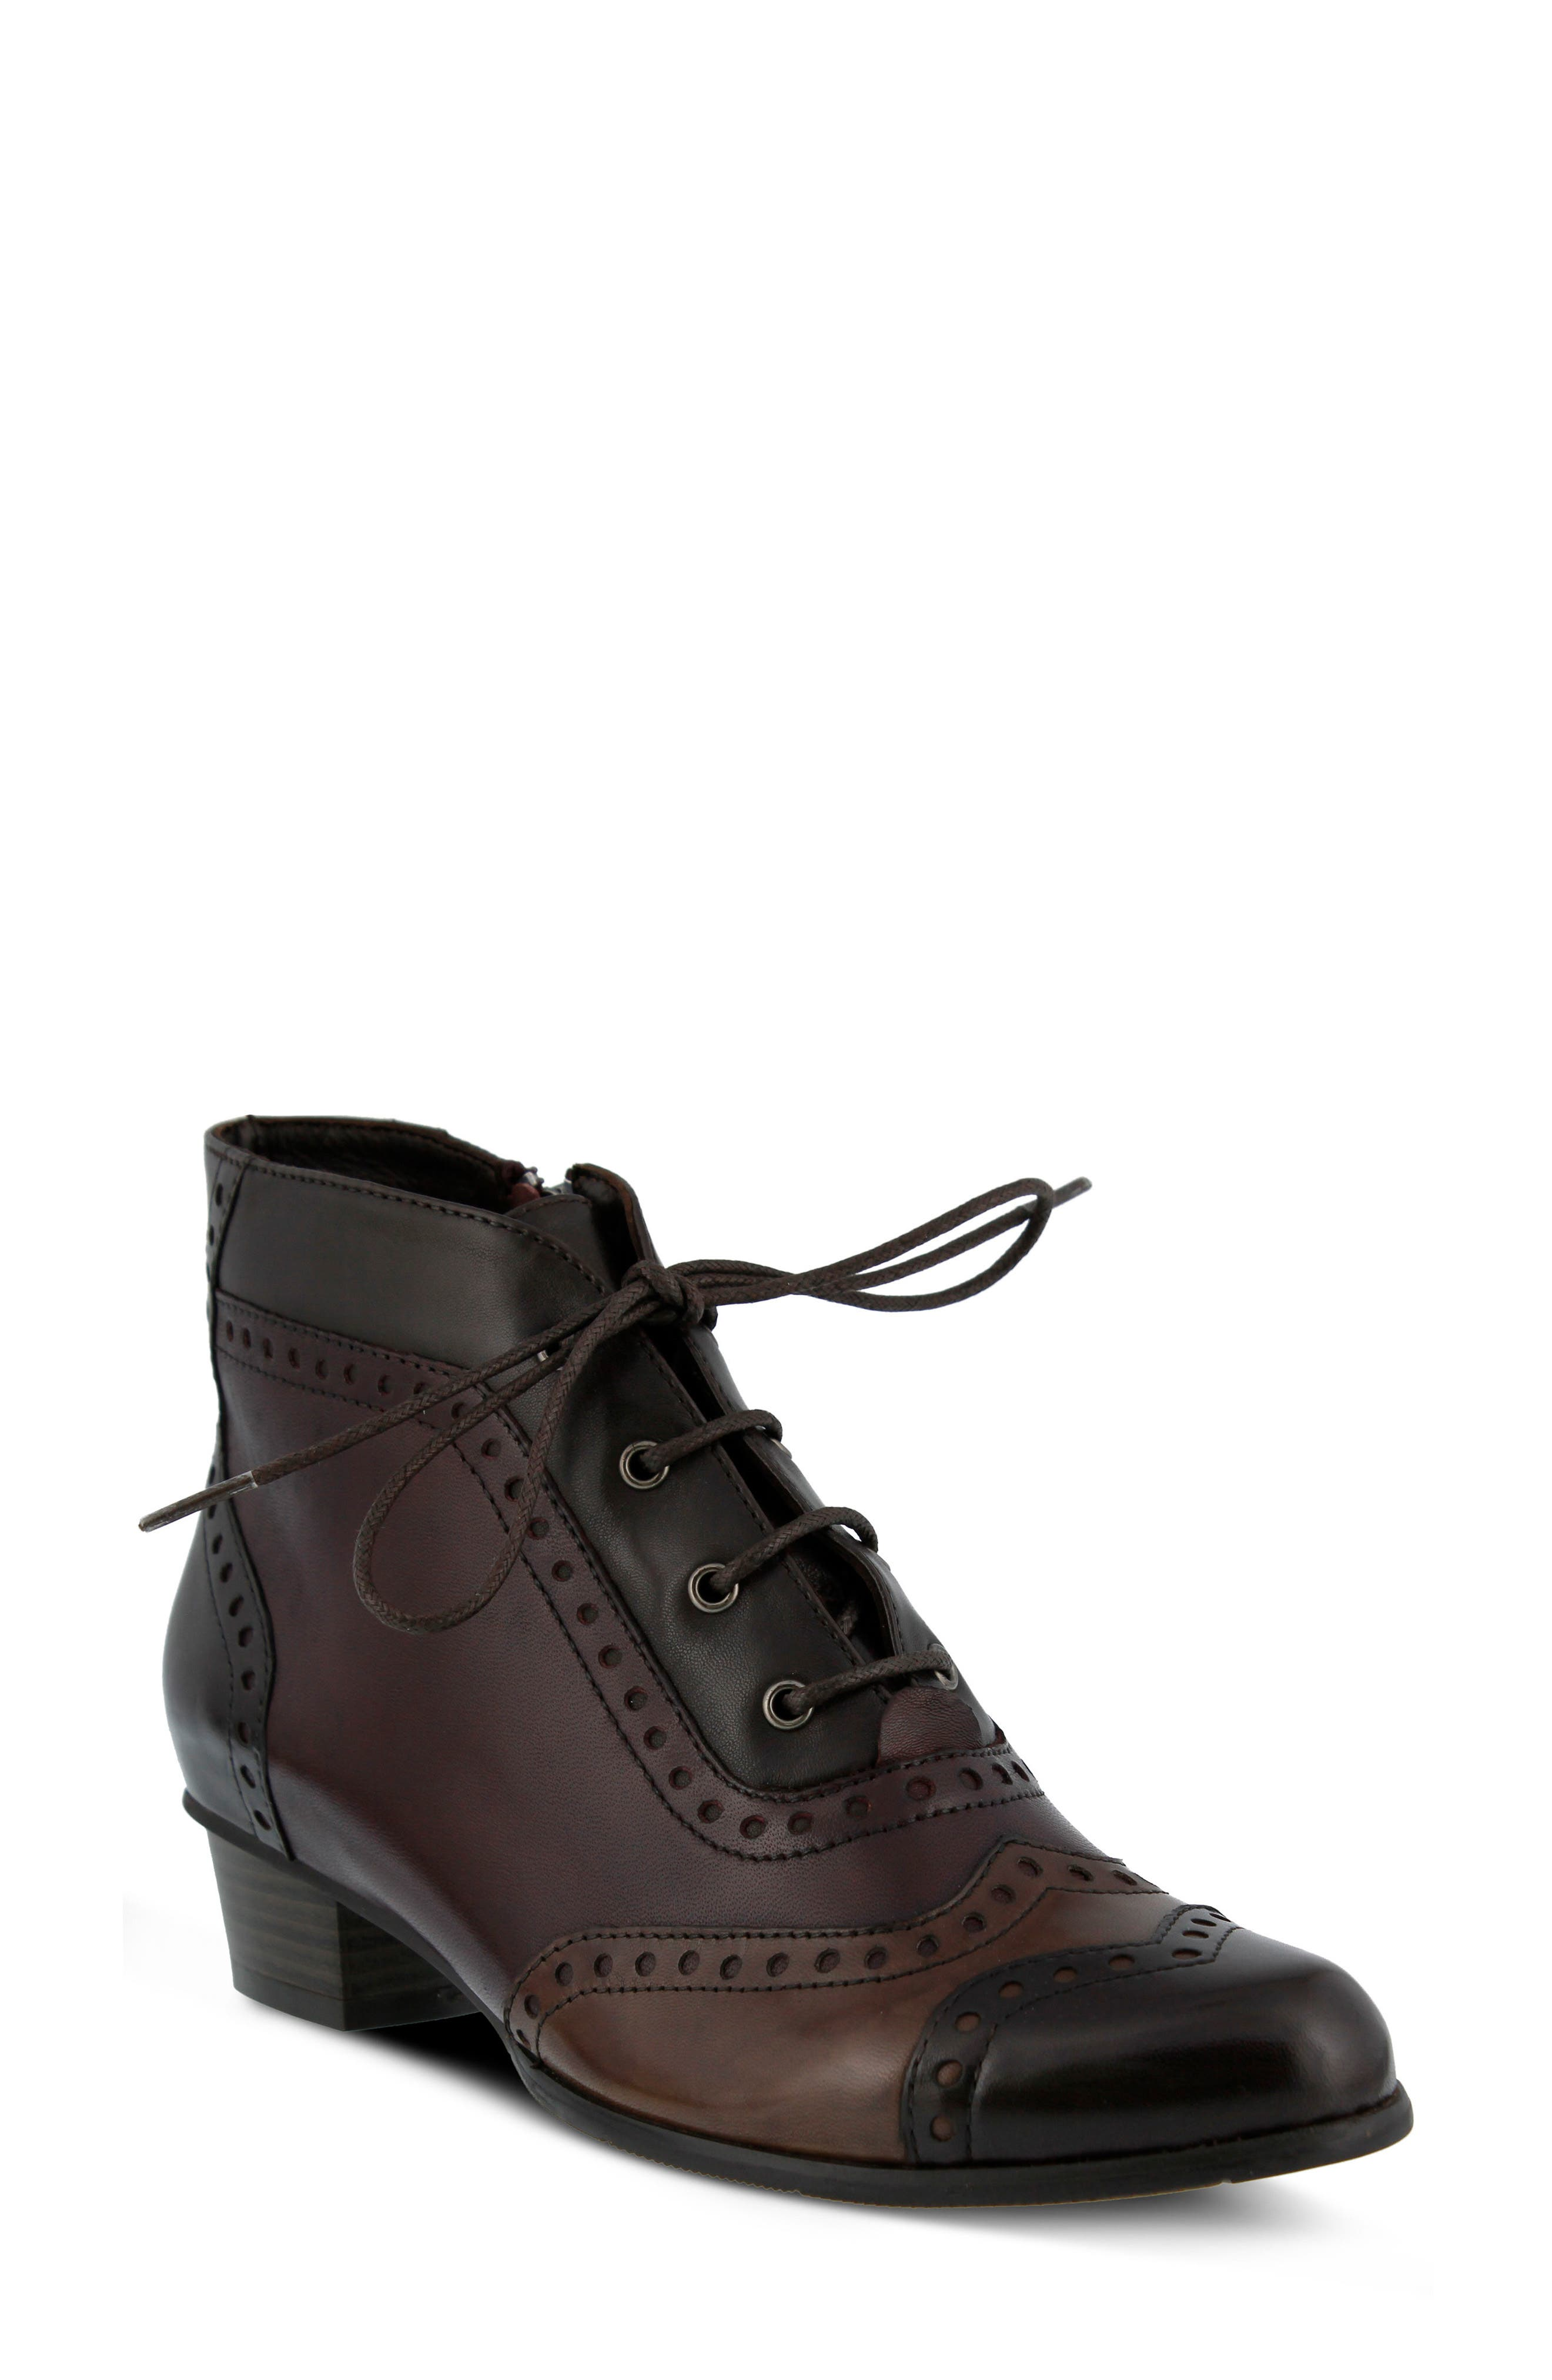 Heroic Bootie,                             Main thumbnail 1, color,                             Brown Multi Leather